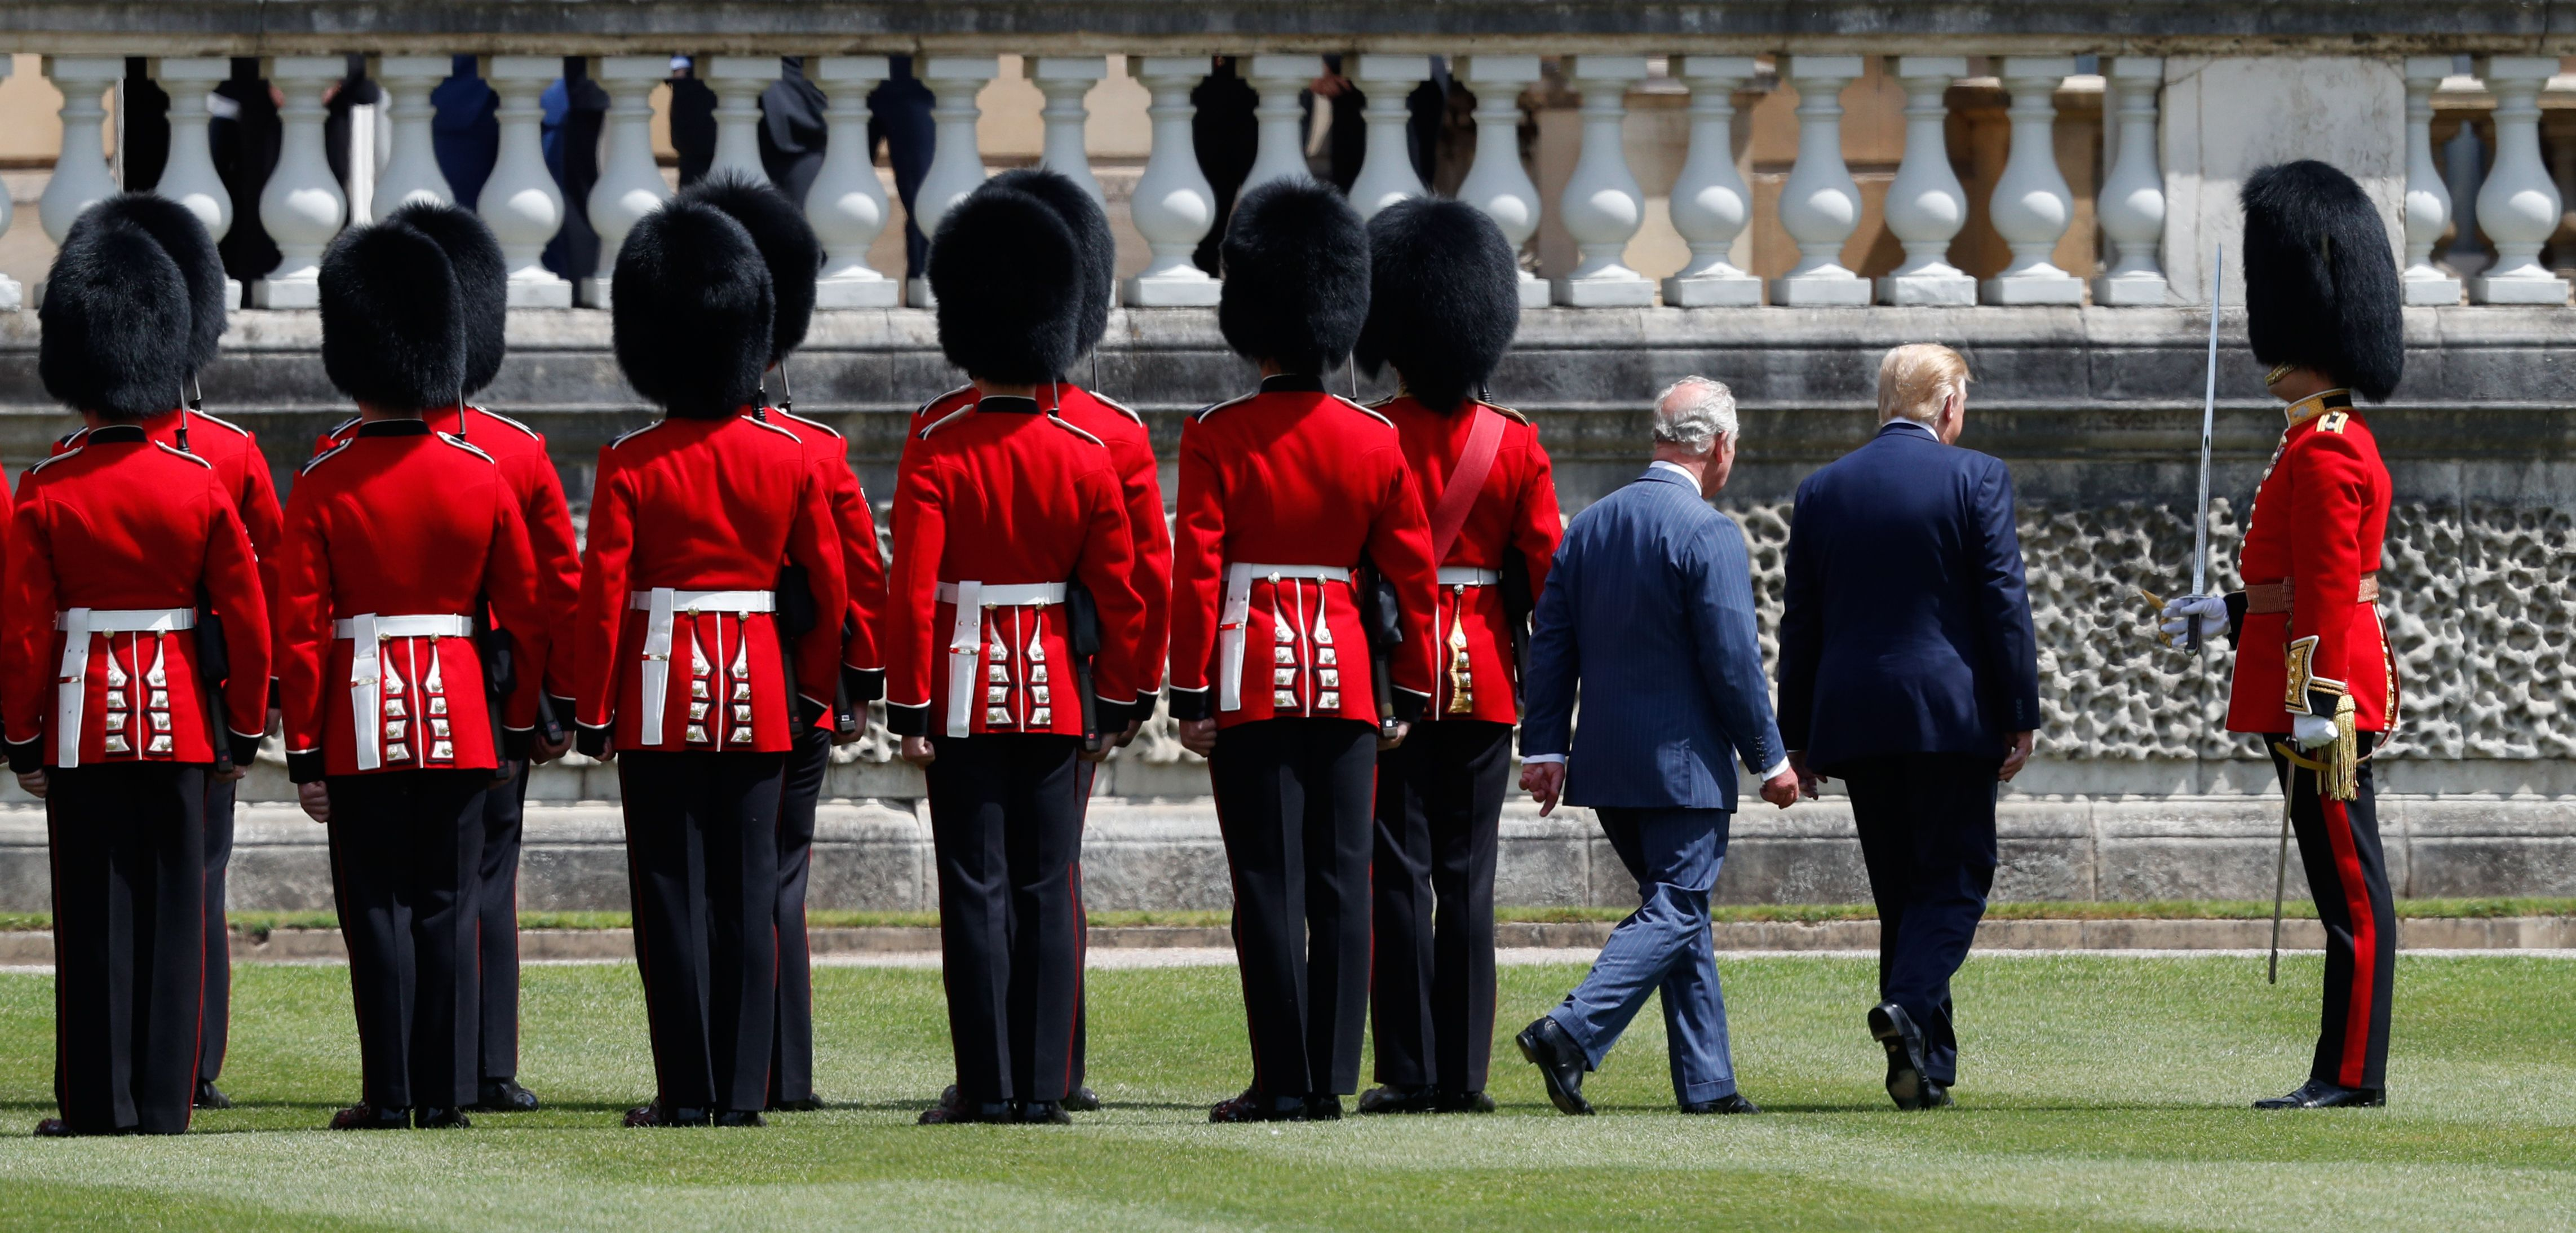 US President Donald Trump (2R) and Britain's Prince Charles, Prince of Wales (3R) inspects the guard of honour during a welcome ceremony at Buckingham Palace in central London on June 3, 2019, on the first day of the US president and First Lady's three-day State Visit to the UK. - Britain rolled out the red carpet for US President Donald Trump on June 3 as he arrived in Britain for a state visit already overshadowed by his outspoken remarks on Brexit. (Photo by Adrian DENNIS / AFP)        (Photo credit should read ADRIAN DENNIS/AFP/Getty Images)